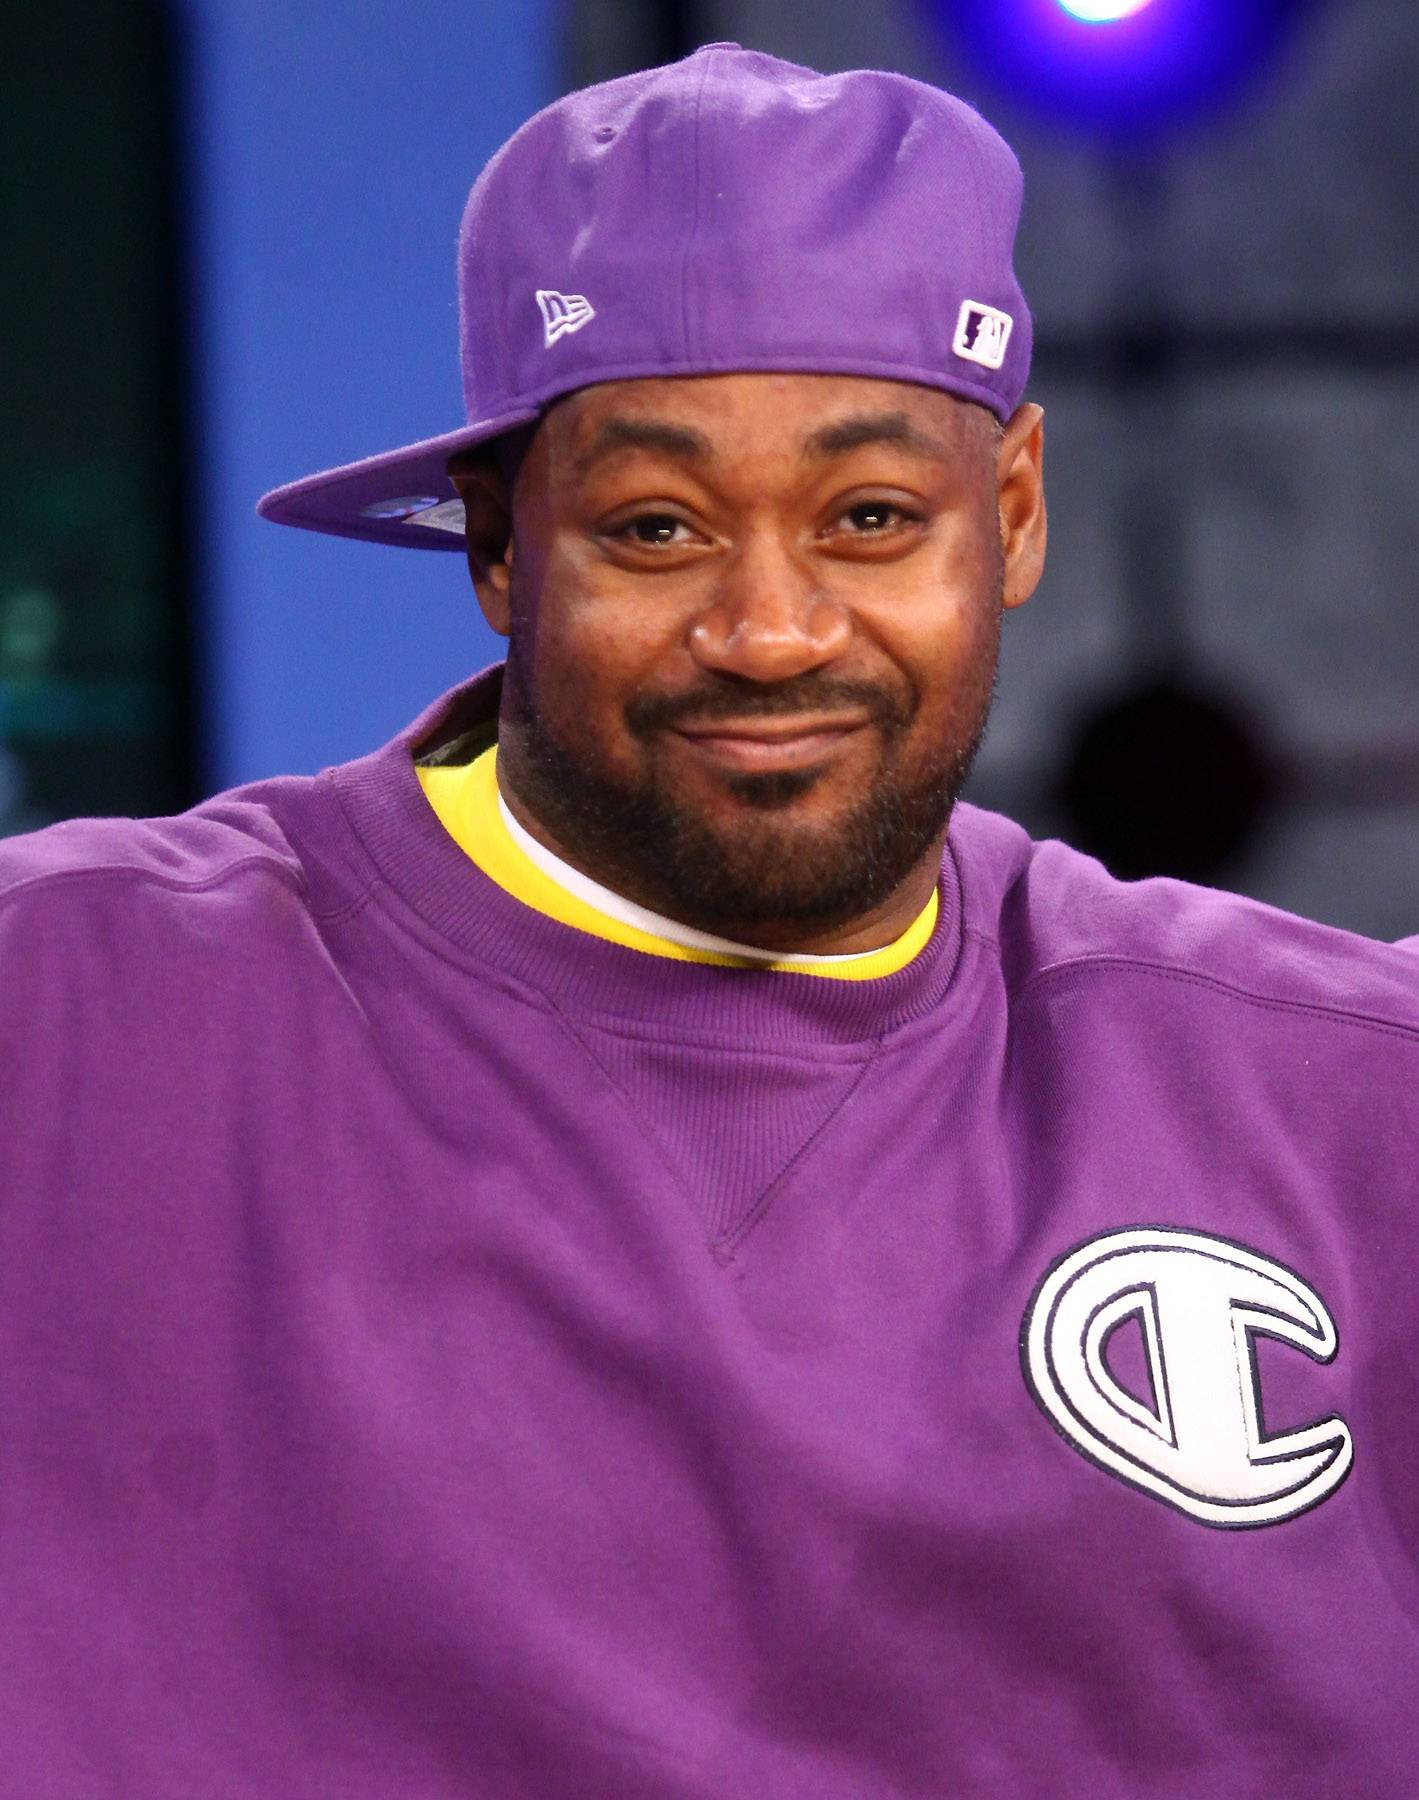 """Ghostface Killah, """"All I Got Is You"""" - The rapper acknowledges that his mother and grandmother helped him become the man he is today. He simply lets Mary J. Blige's sweet vocals explain: """"All that I got is you and I'm so thankful I made it through.""""  (Photo: Astrid Stawiarz/Getty Images)"""